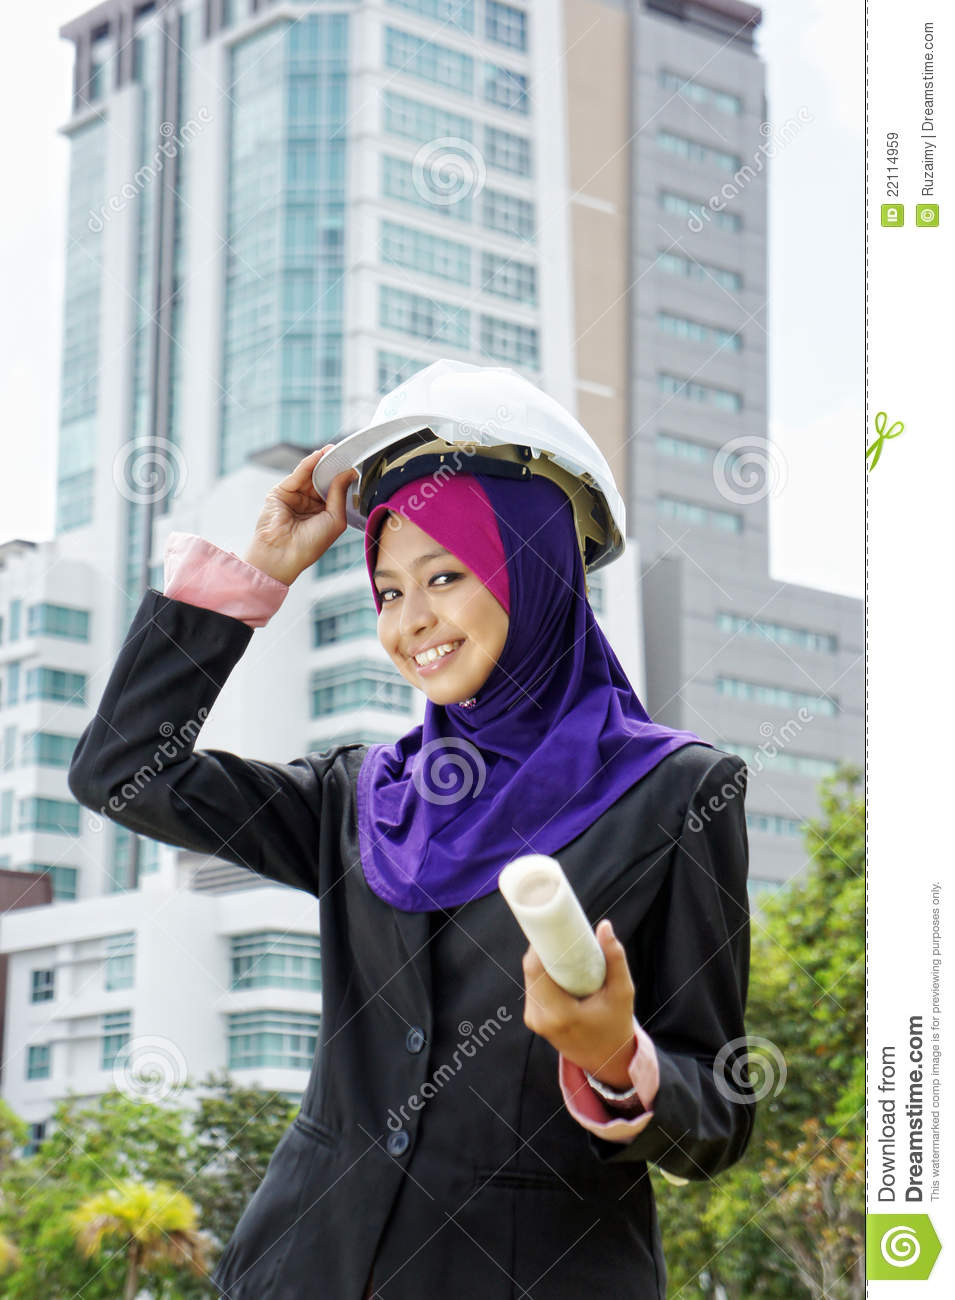 cedarville muslim single women Looking for senior muslim women or men local senior muslim dating service at idating4youcom find senior muslim singles register now for speed dating, use it.